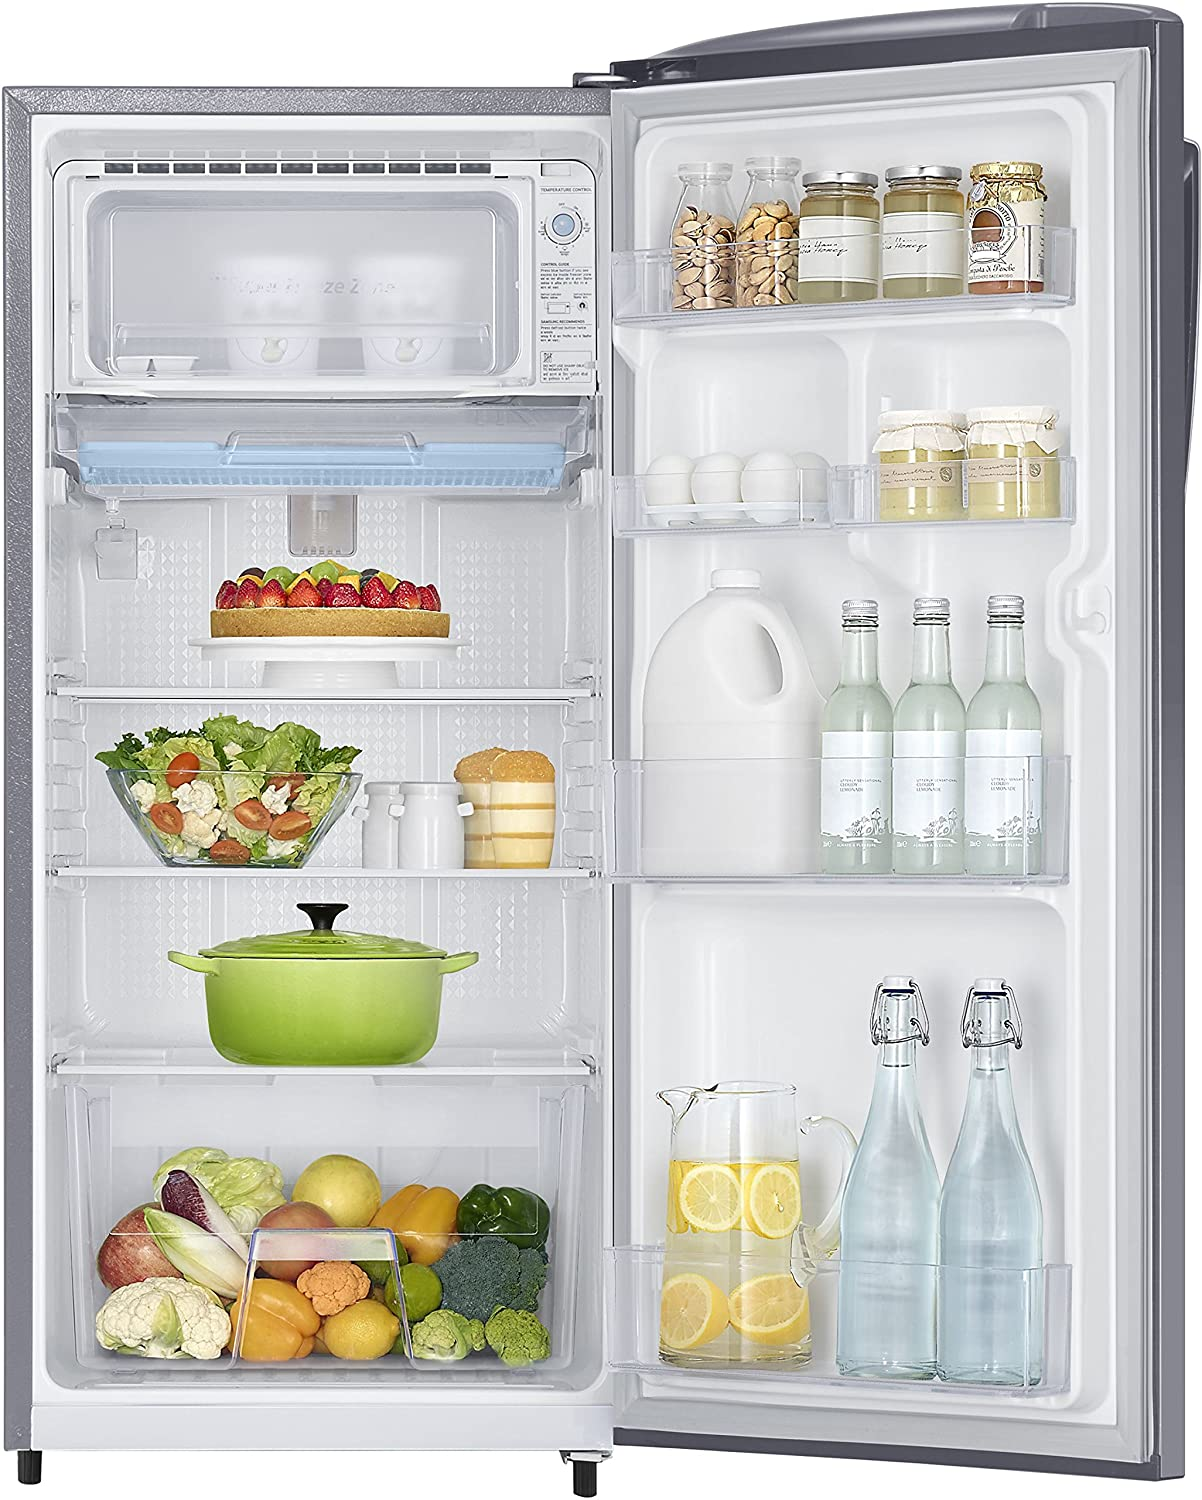 Samsung 192 L 4 Star Direct Cool Single Door Refrigerator (RR19J2414SA/TL,  Metal Graphite): Amazon.in: Home U0026 Kitchen